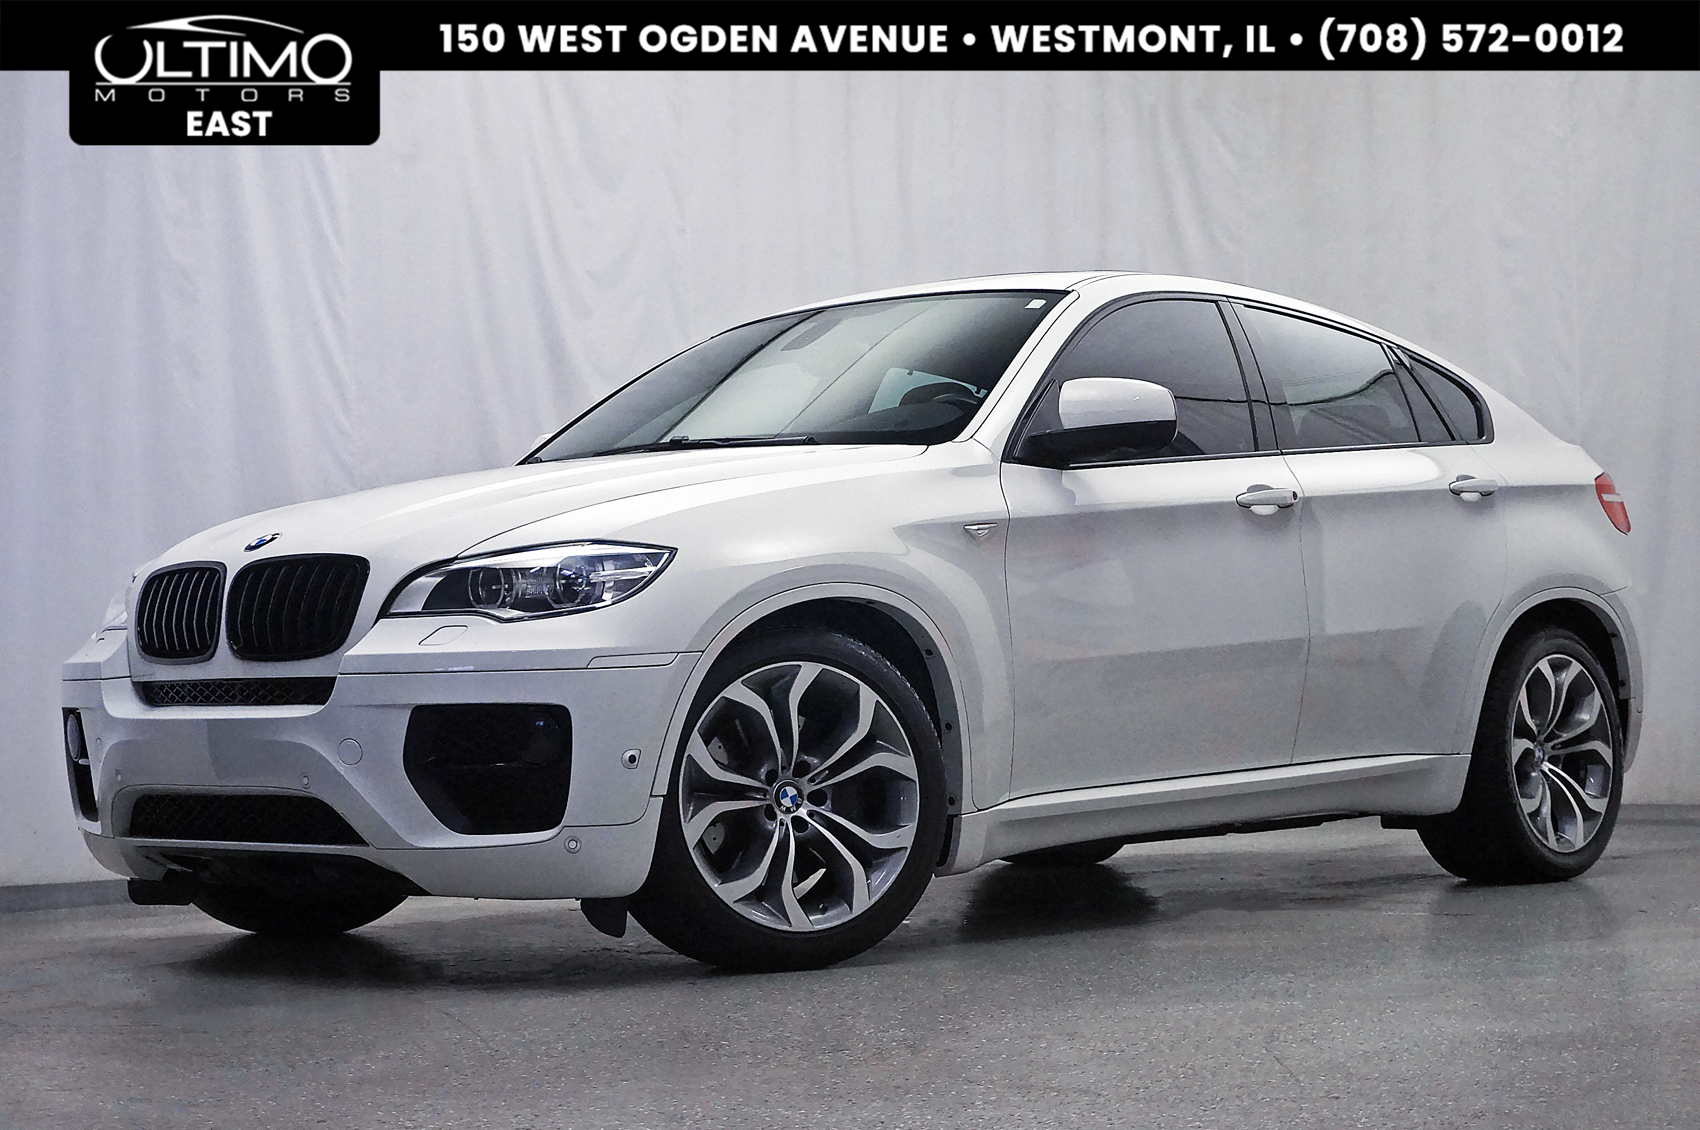 Pre-Owned 2014 BMW X6 xDrive50i Cold Weather Pkg, Premium Pkg, HUD, 20-Inch Wheels